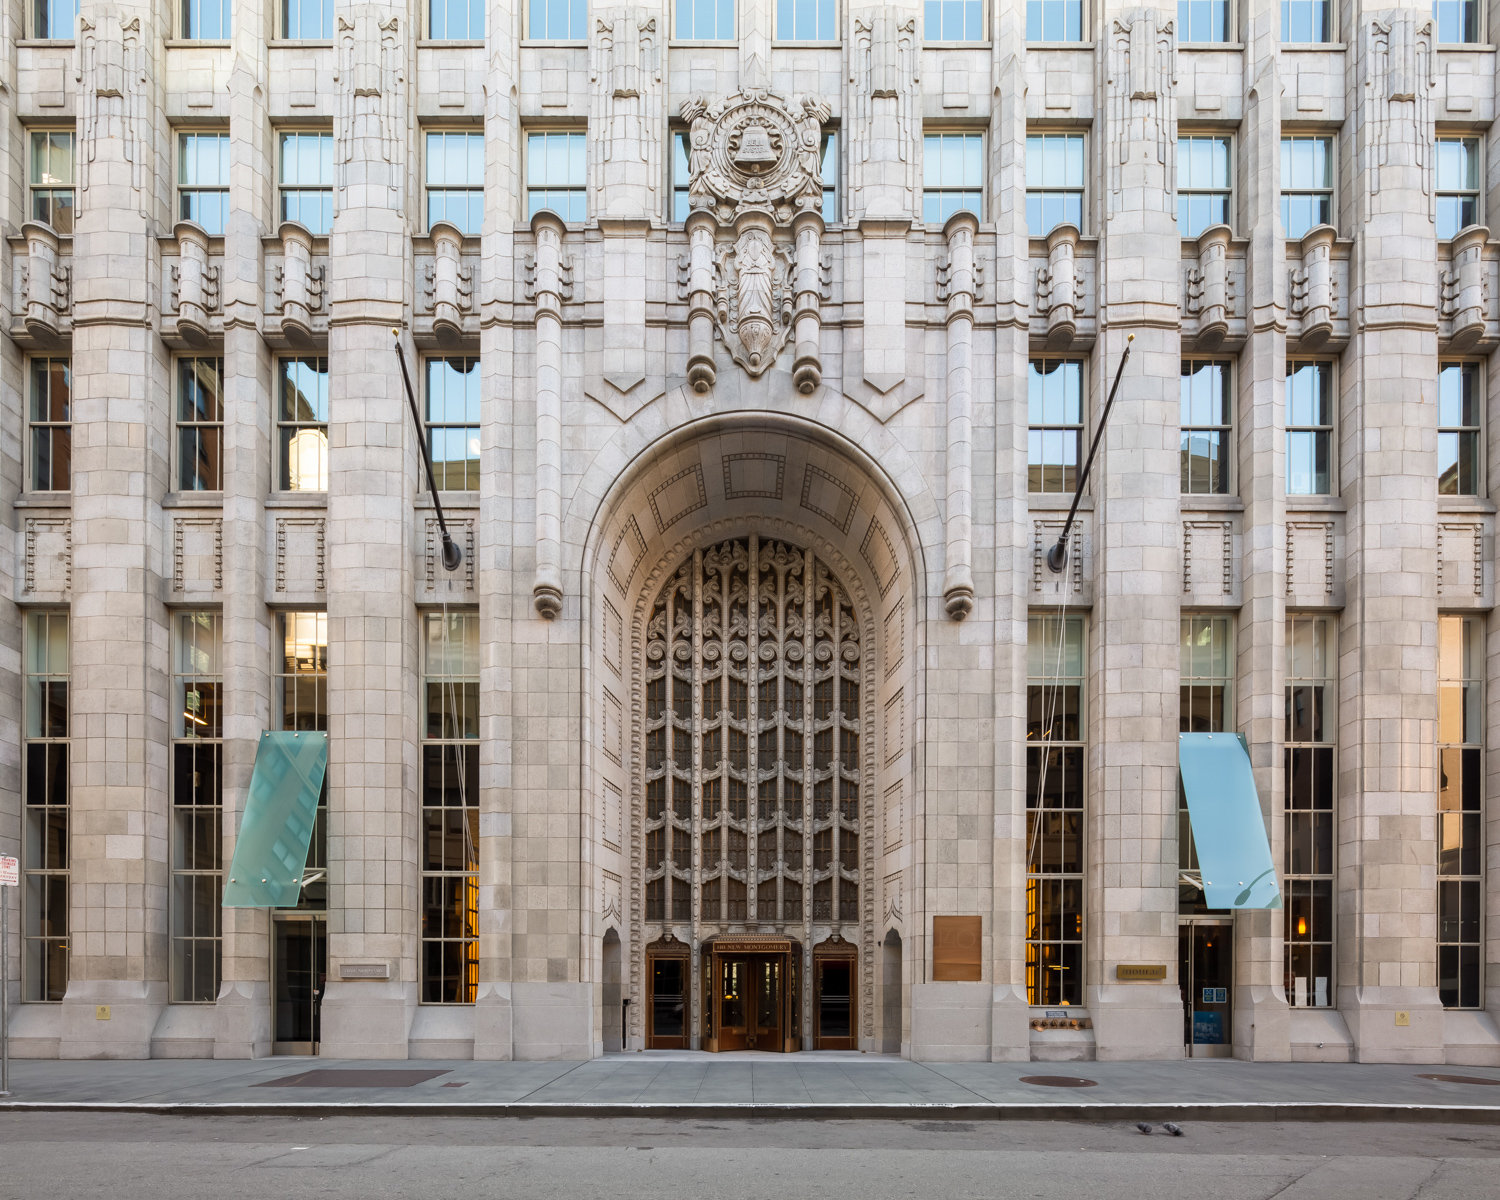 140 New Montgomery Street entry, image by Andrew Campbell Nelson